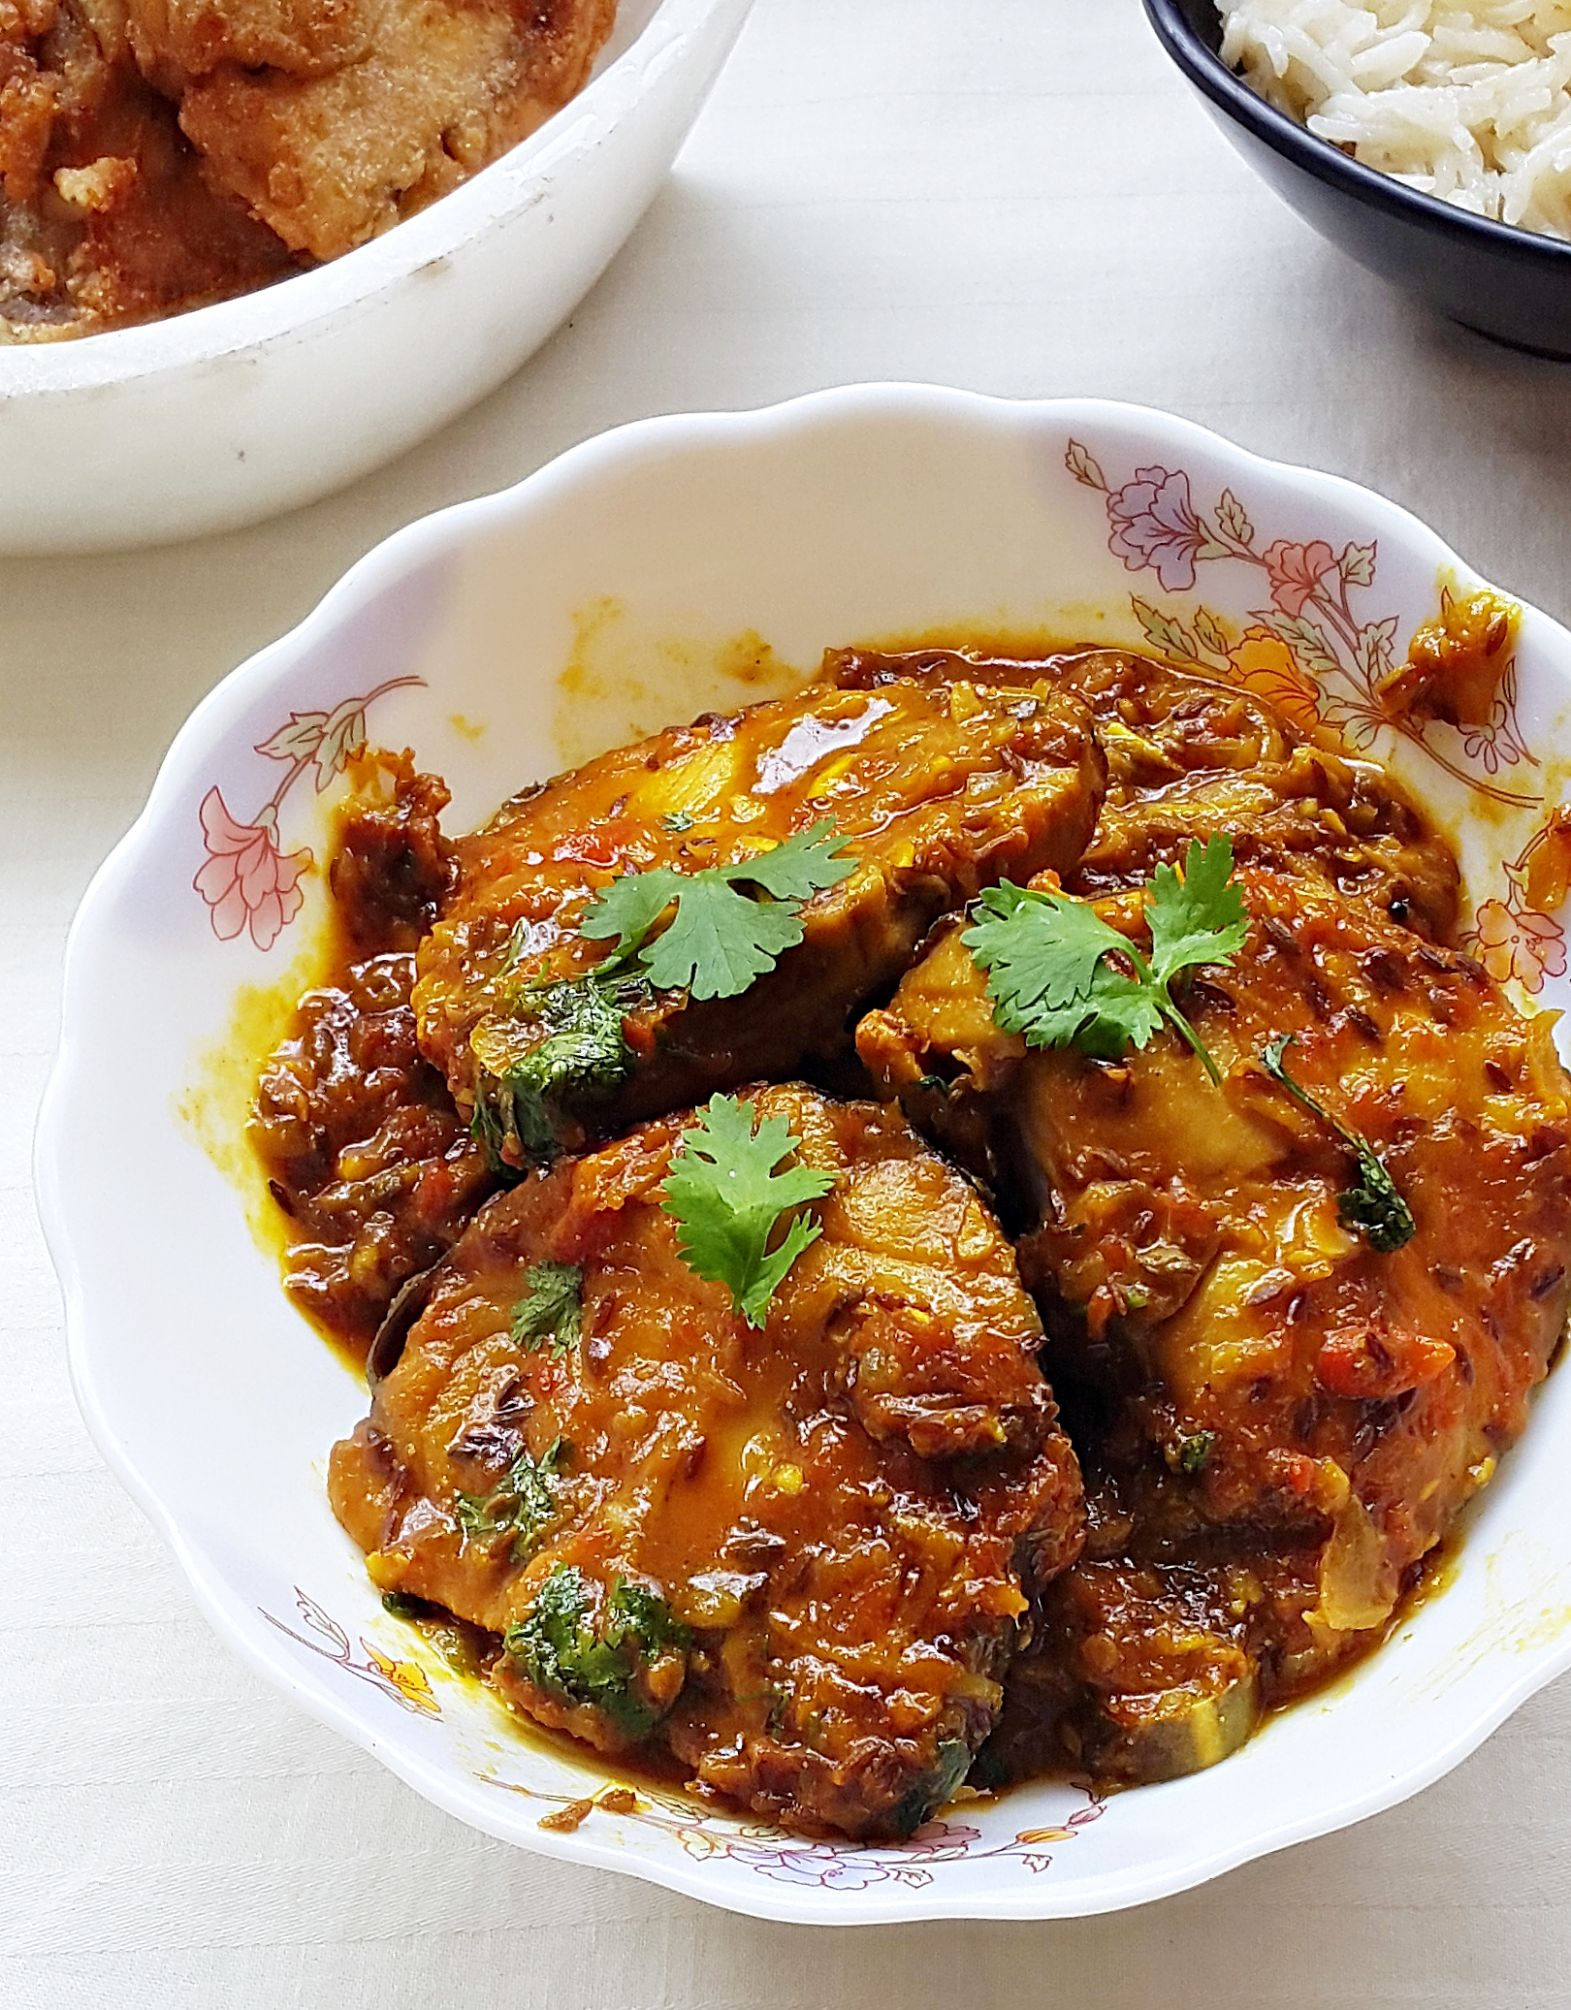 Tamarind king fish curry - king fish (surmai) in tamarind sauce - Fish Recipes North Indian Style